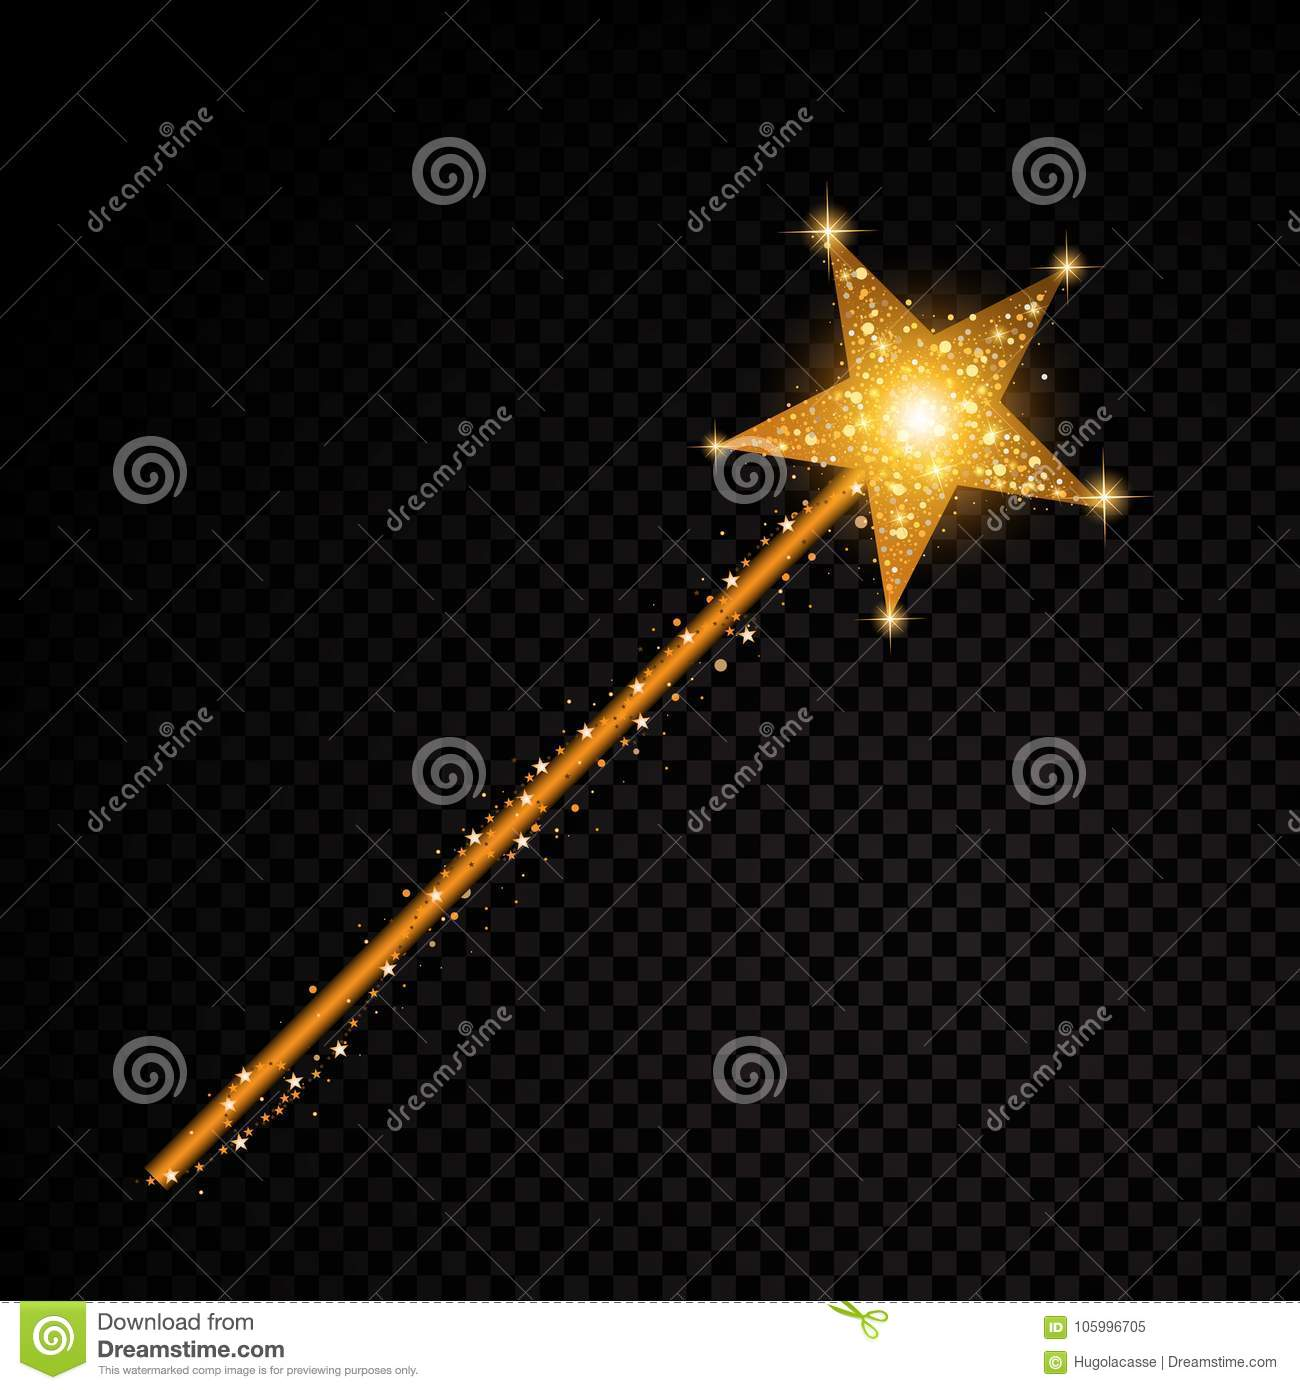 Gold glittering magic stick star dust trail sparkling particles on transparent background. Vector glamour fashion